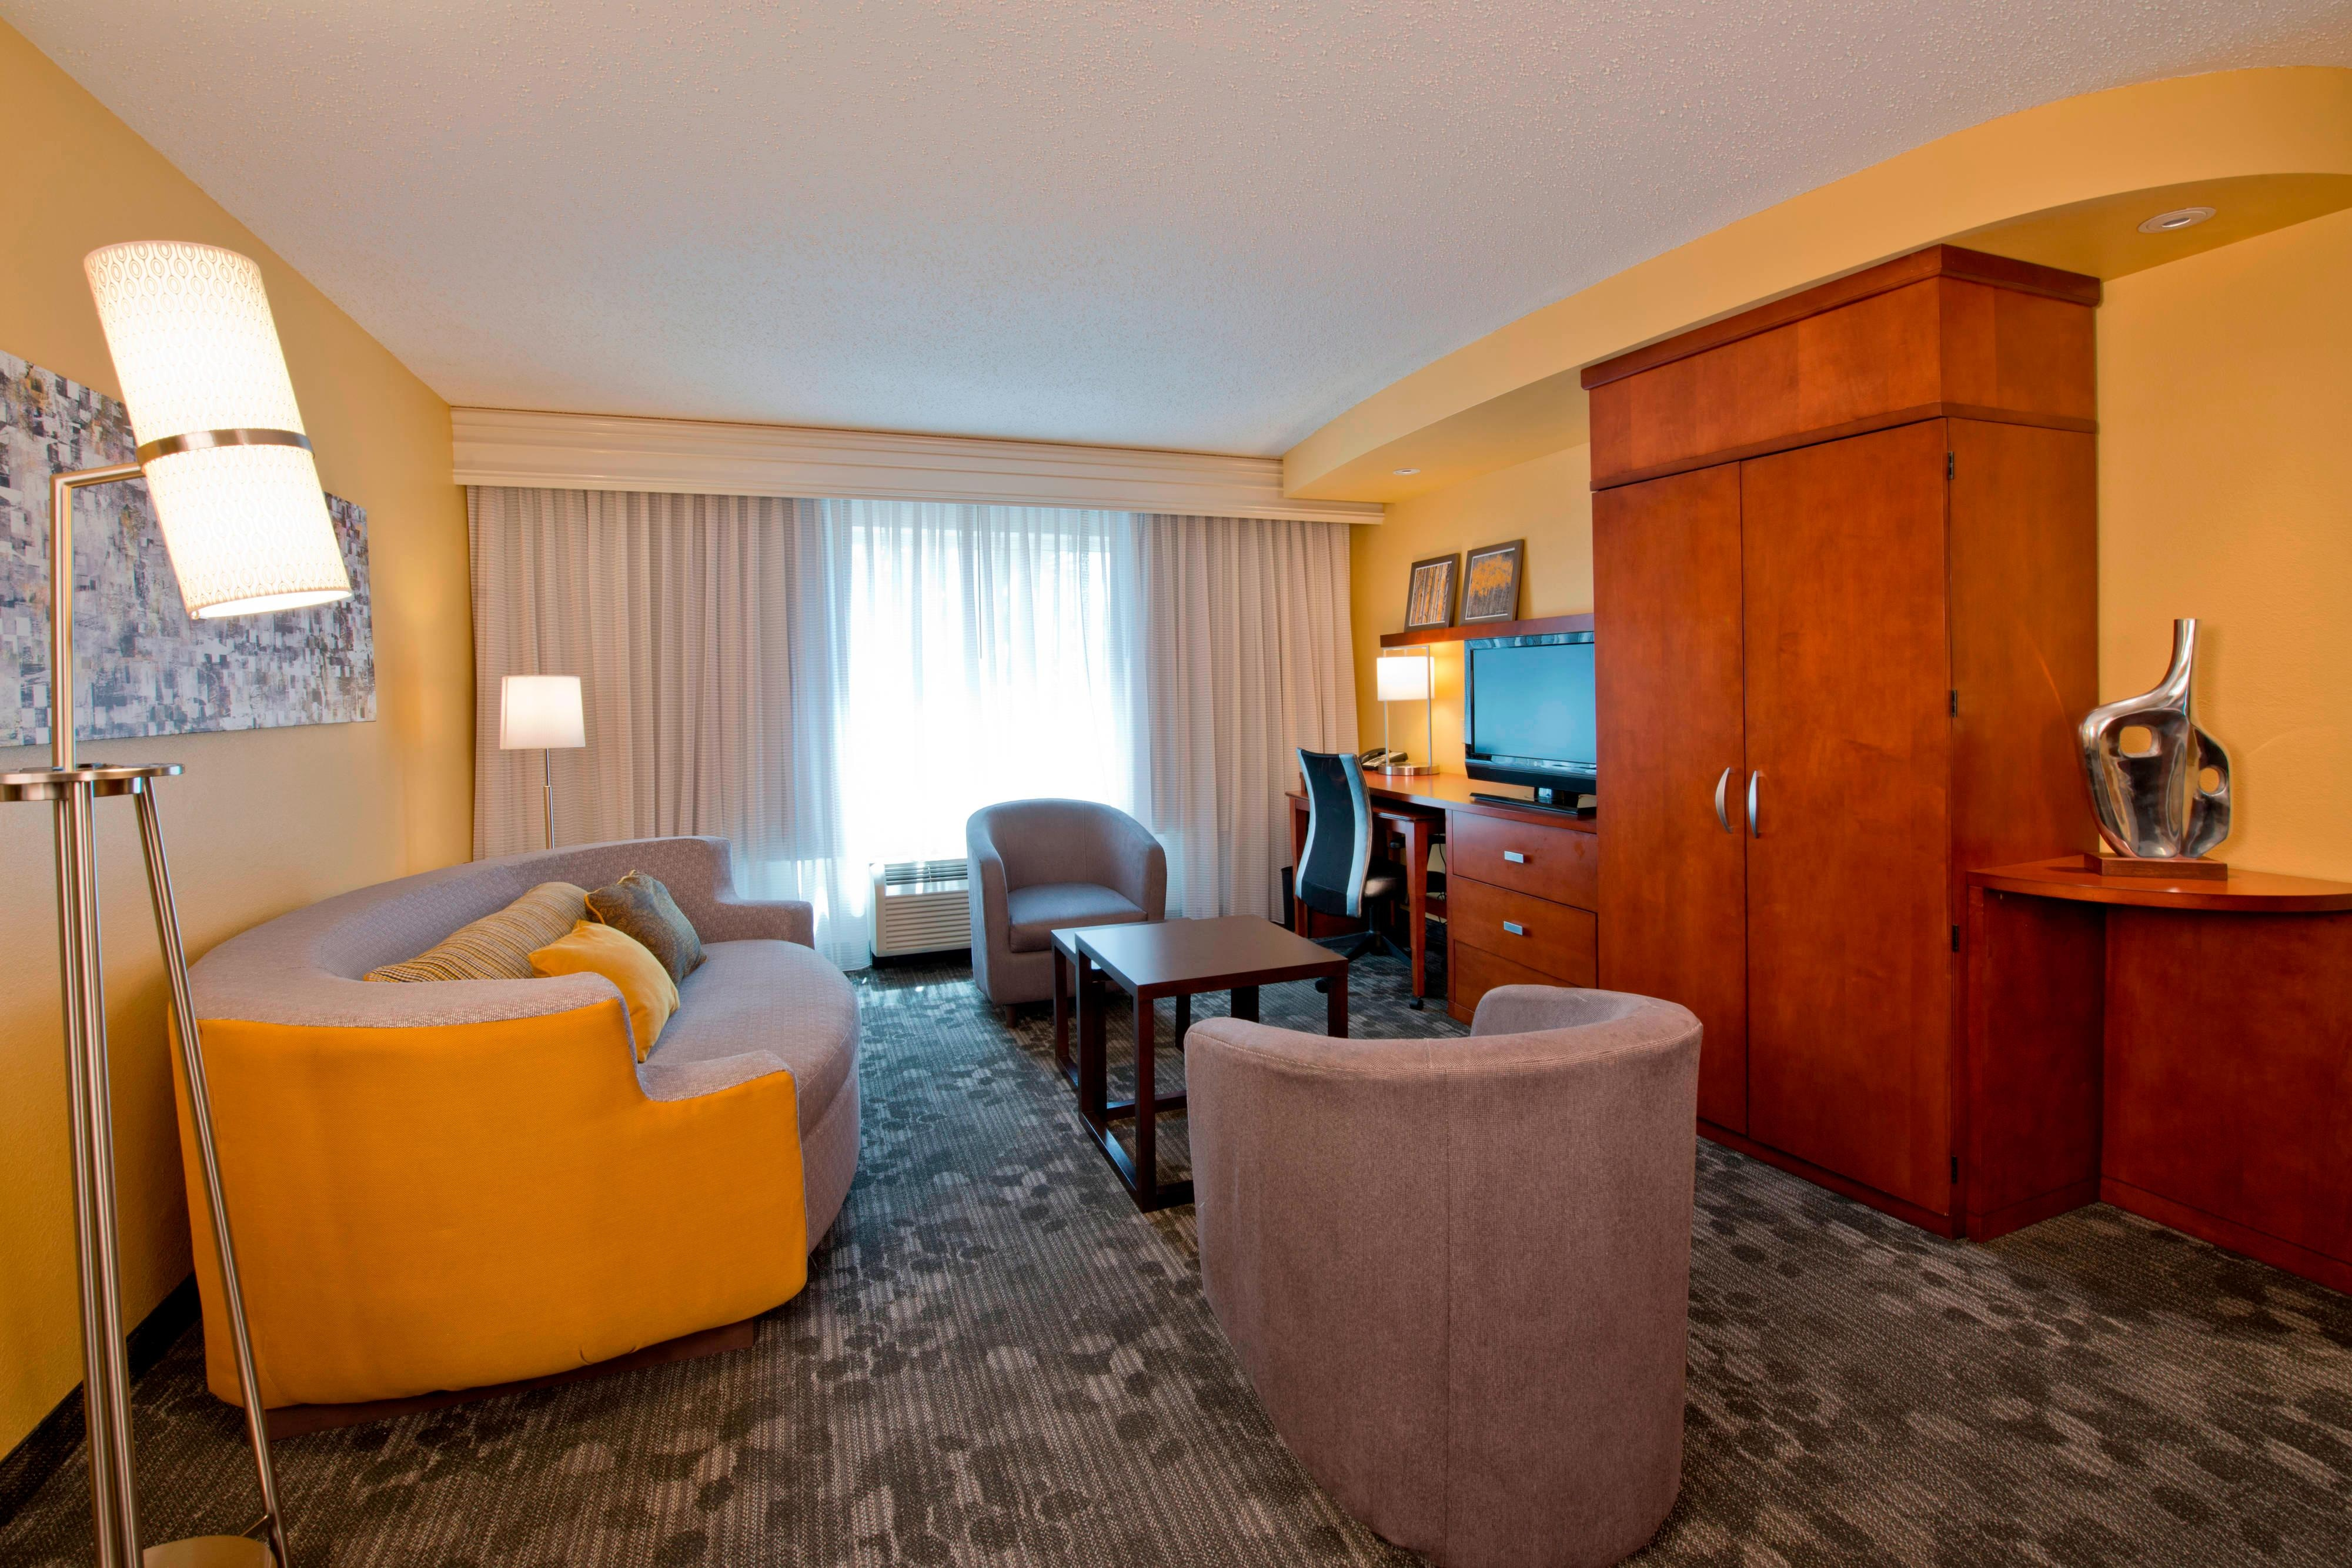 Hotels in Jacksonville Florida